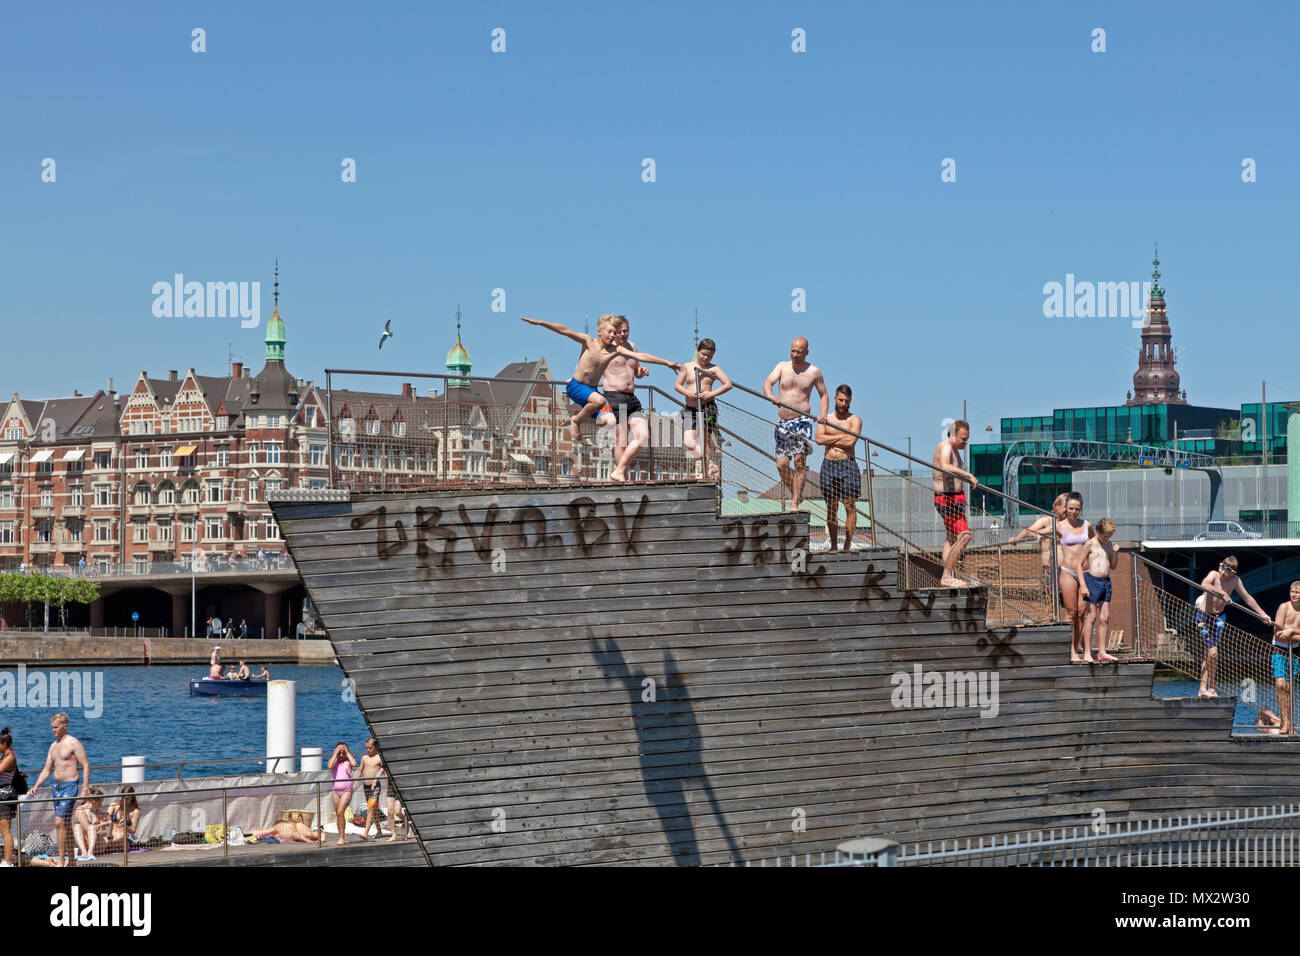 Boy jumping from the tower of Islands Brygge Harbour Bath in the beginning of the harbour bath season in Copenhagen, Denmark. Another warm summer day. Stock Photo